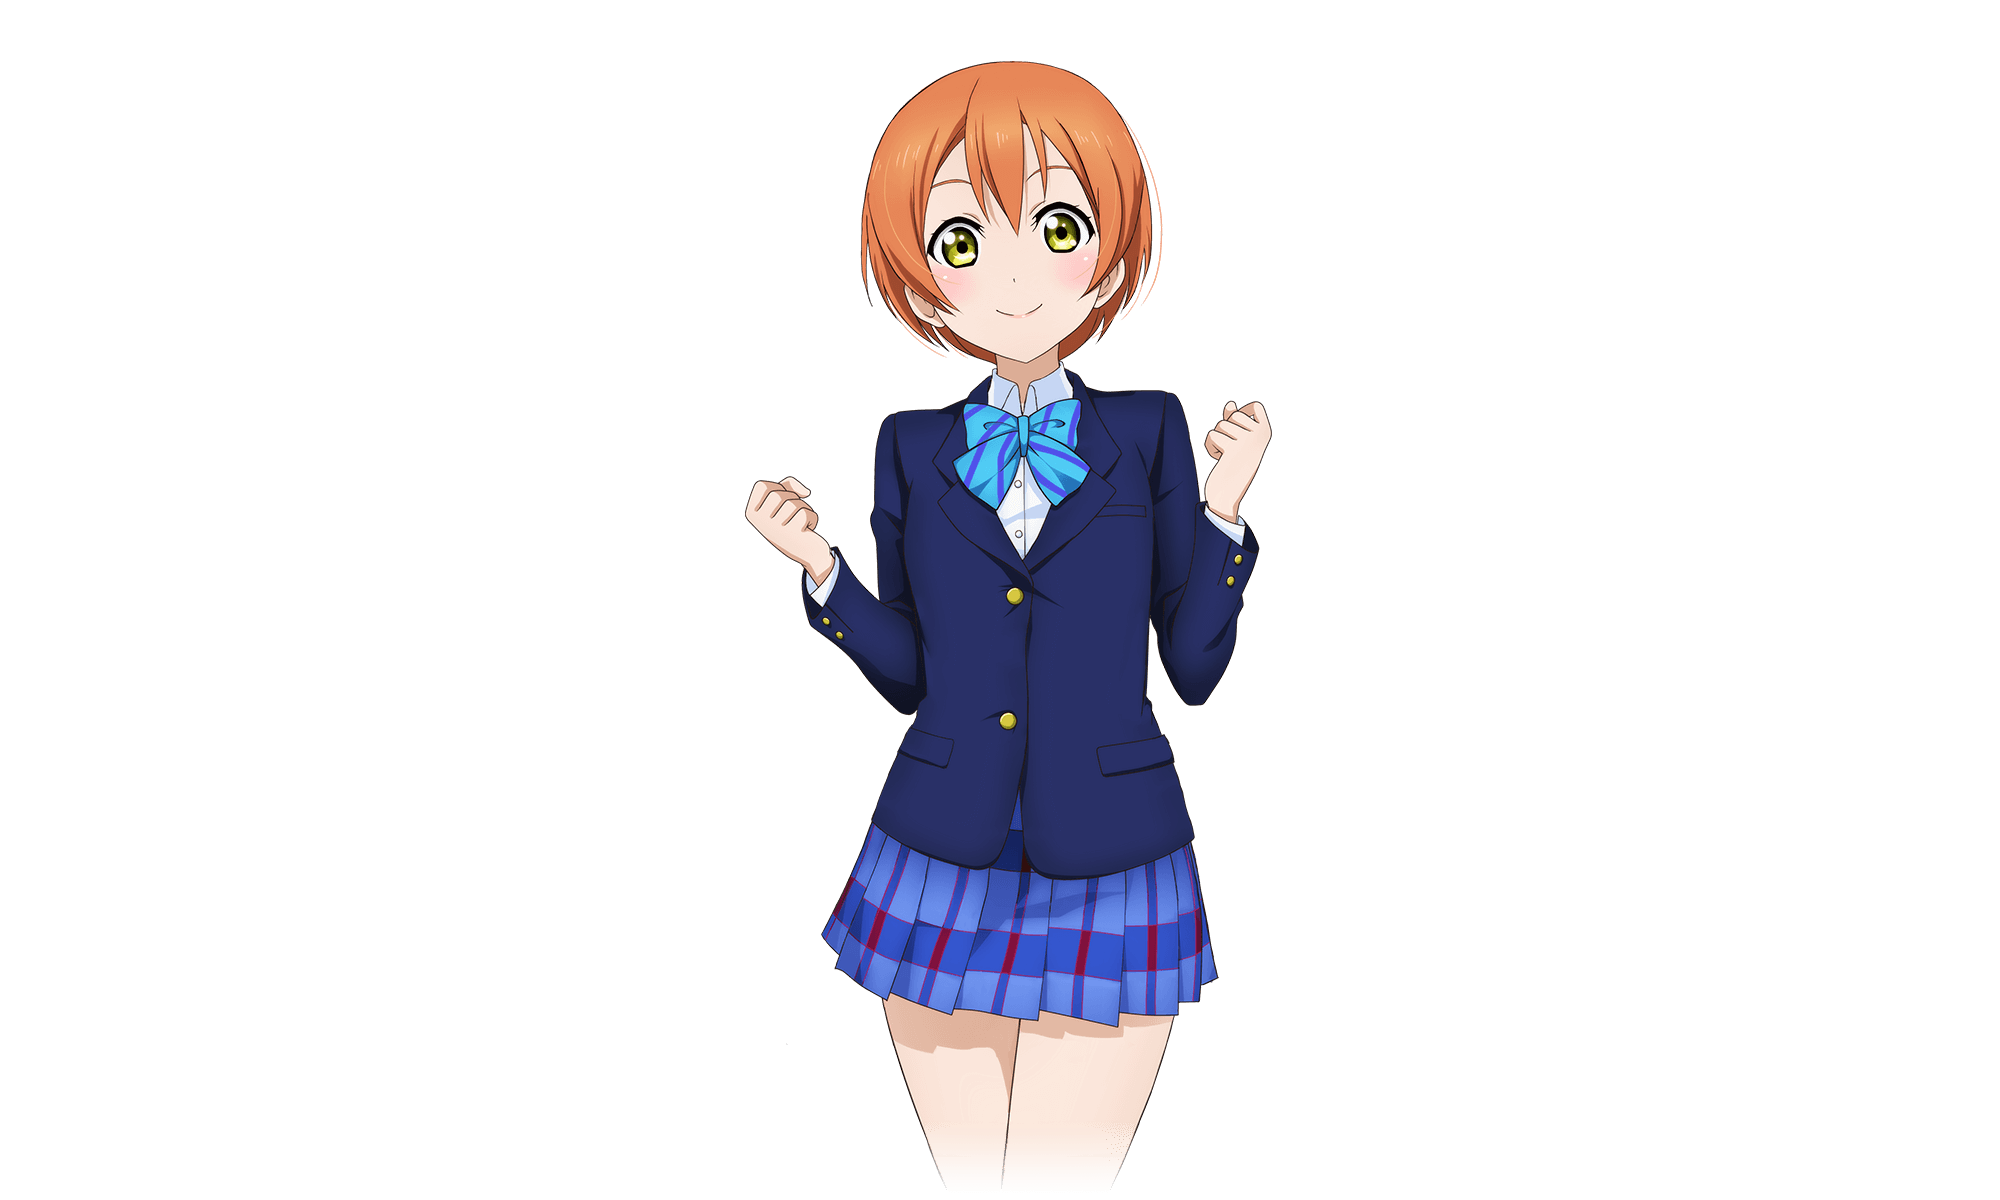 All Hoshizora Rin stills